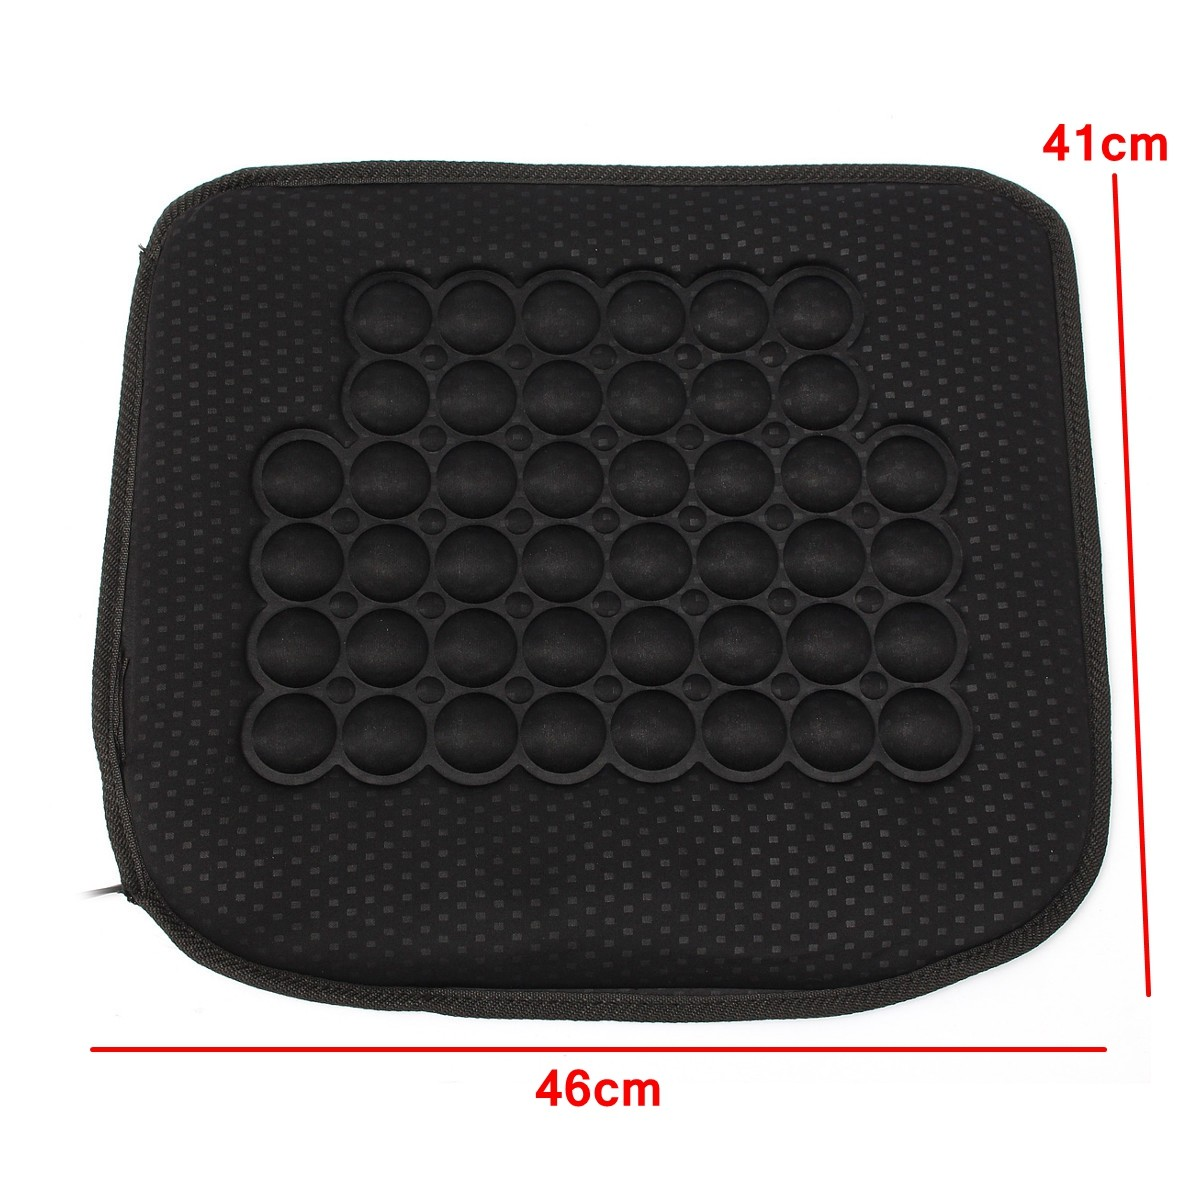 12V 30W Car Front Seat Heated Cushion Hot Cover Warmer Pad for  Auto SUV Truck Cold Weather and Winter Driving